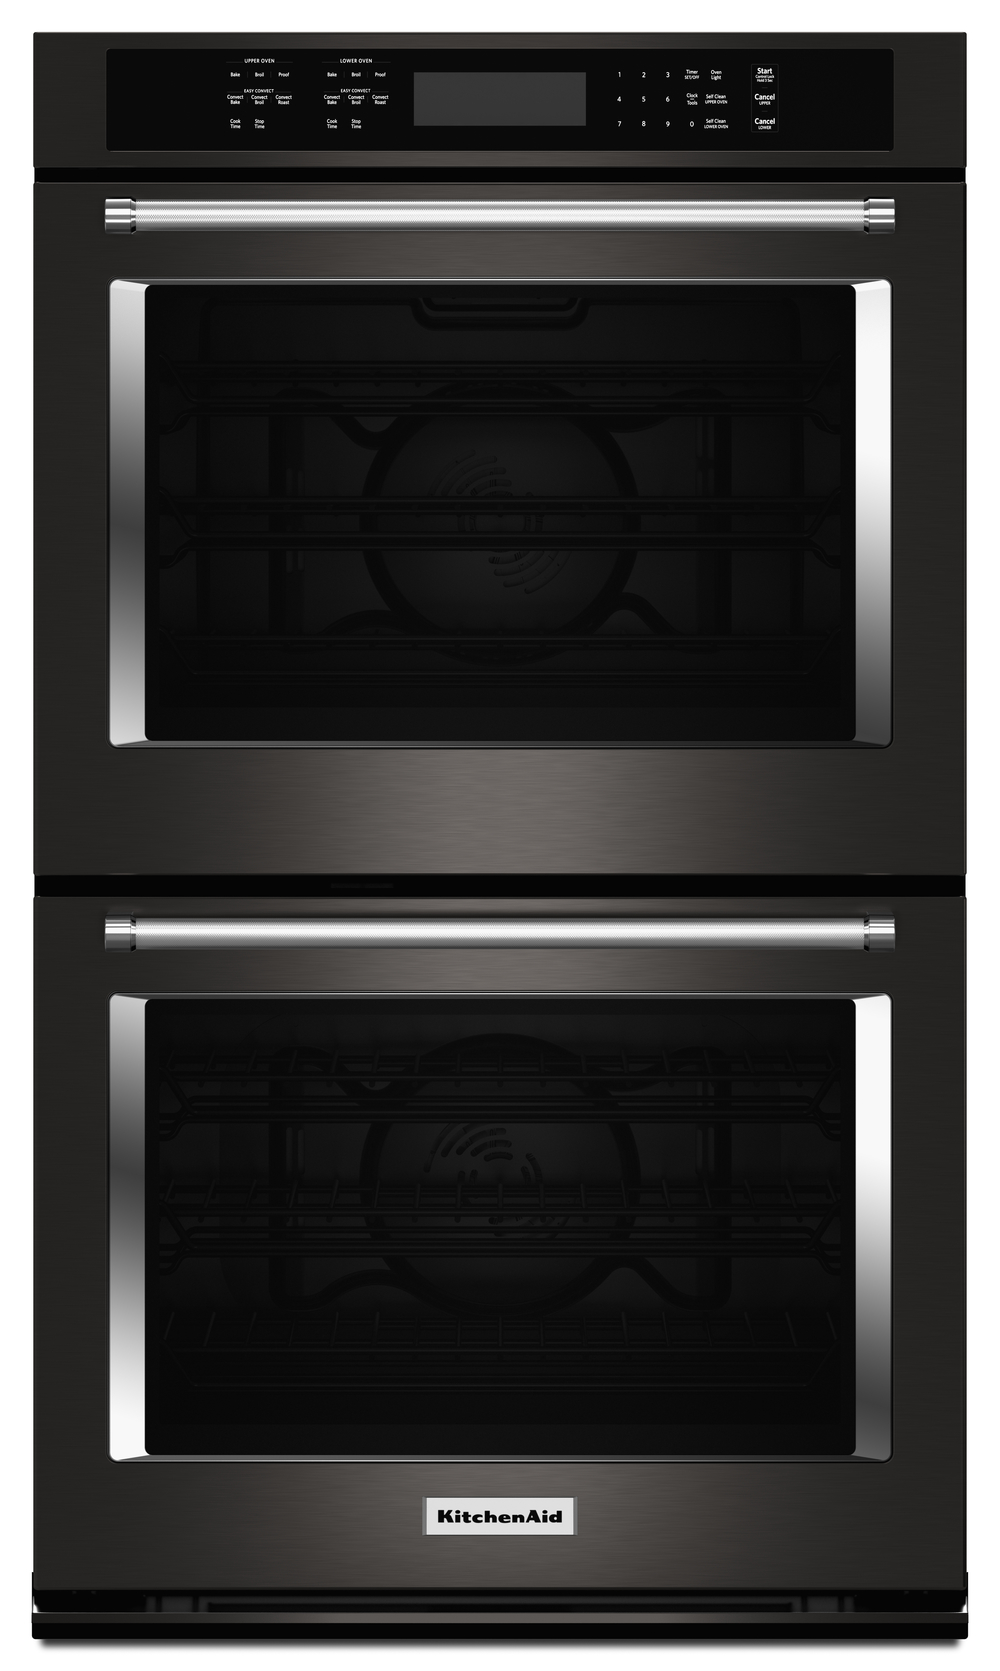 KitchenAid Black Stainless Double Wall Oven KODE500EBS.jpg